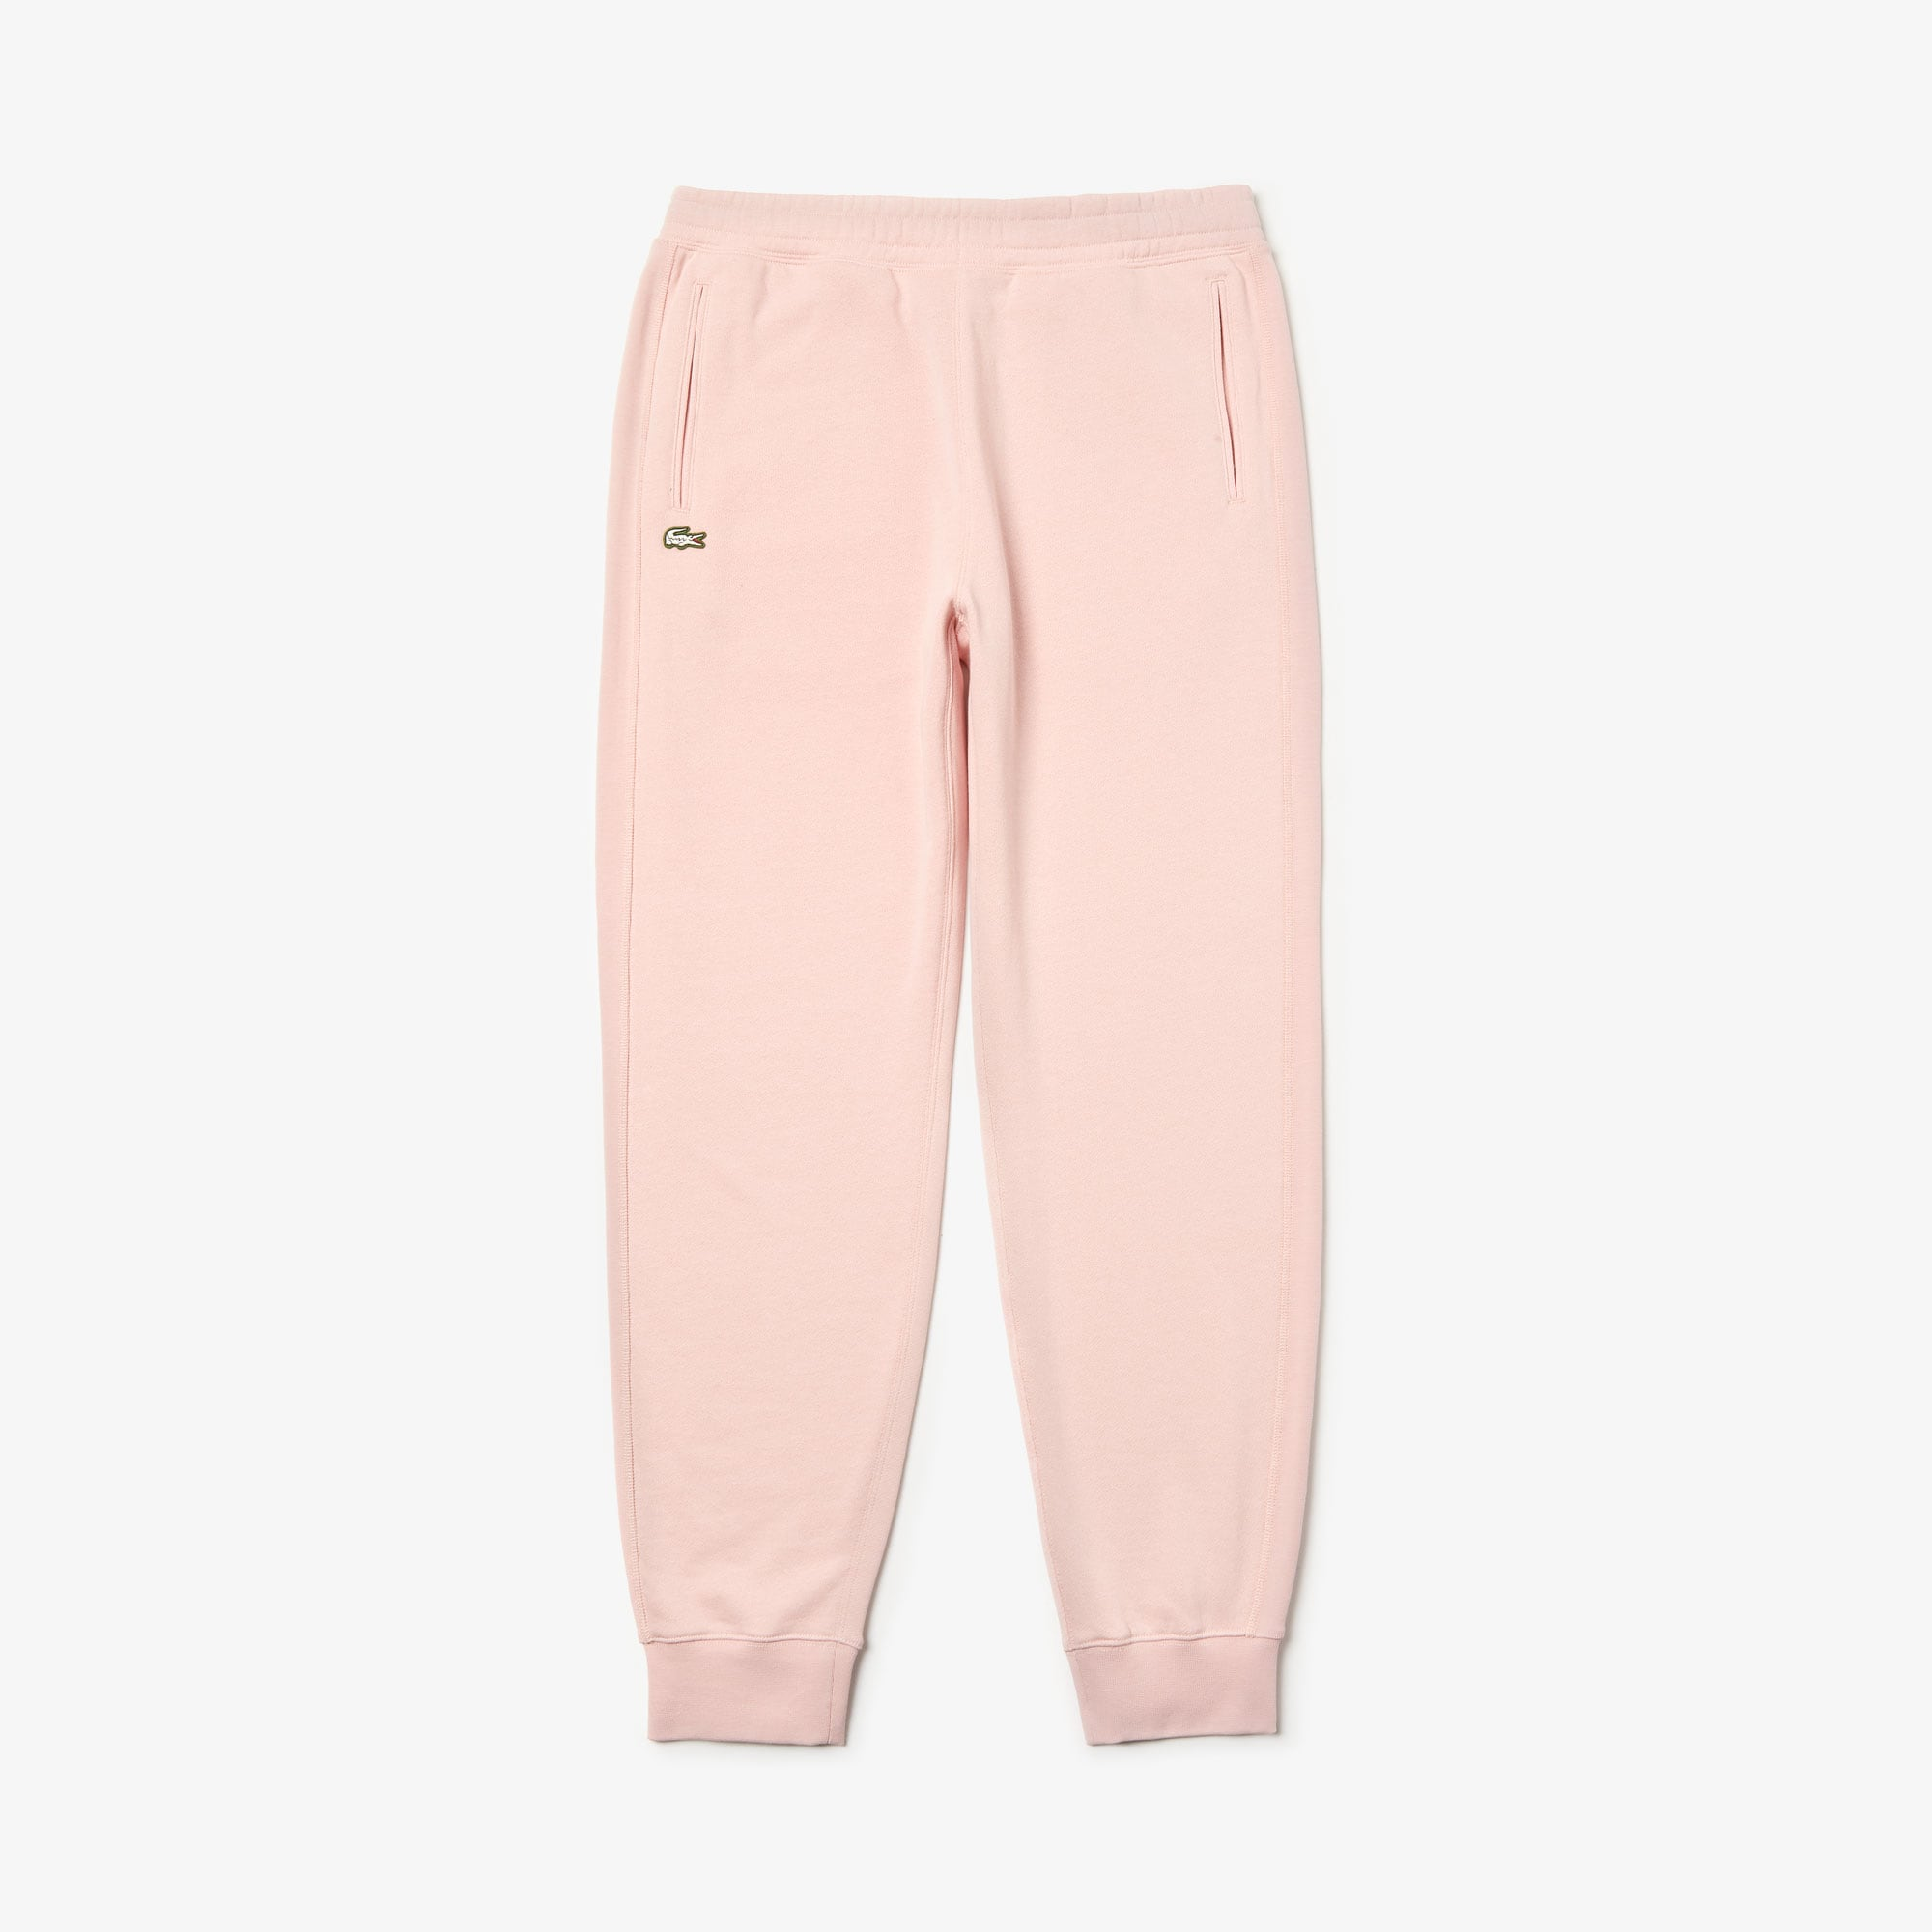 Unisex LIVE Cotton Fleece Sweatpants